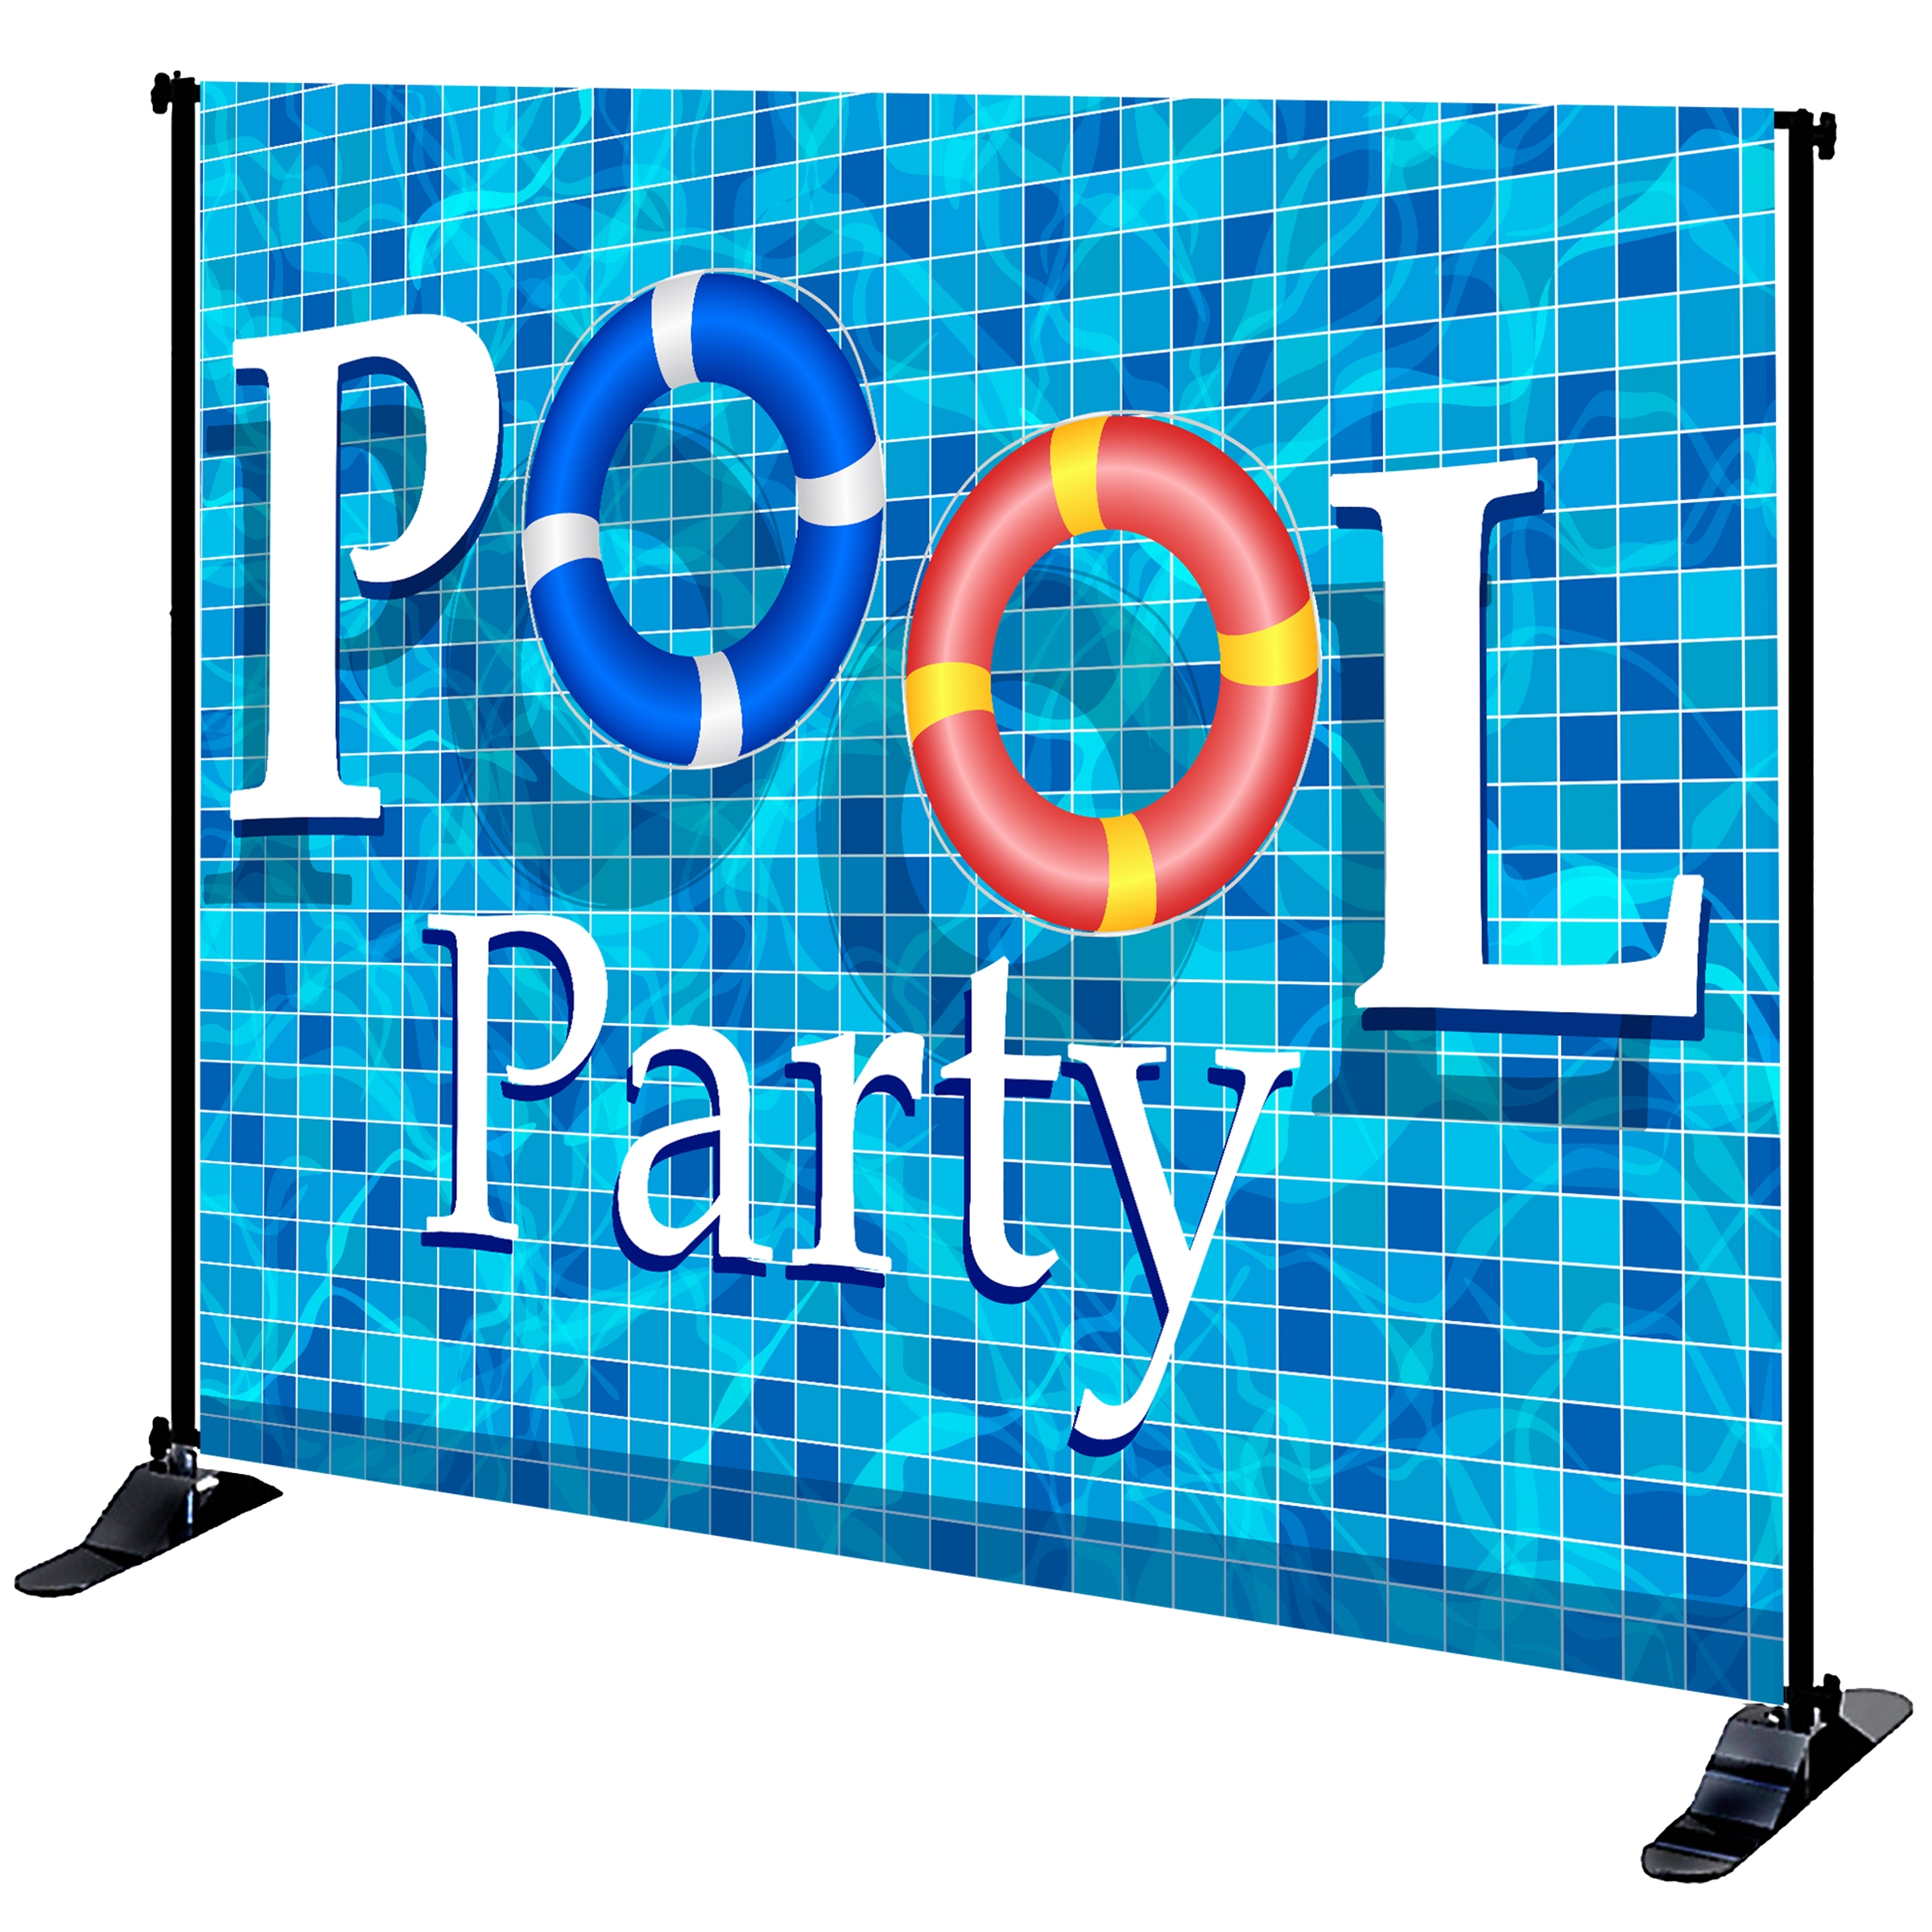 Mighty Banner Display - 8' x 10' Large Tube Frame and Fabric Graphic Kit